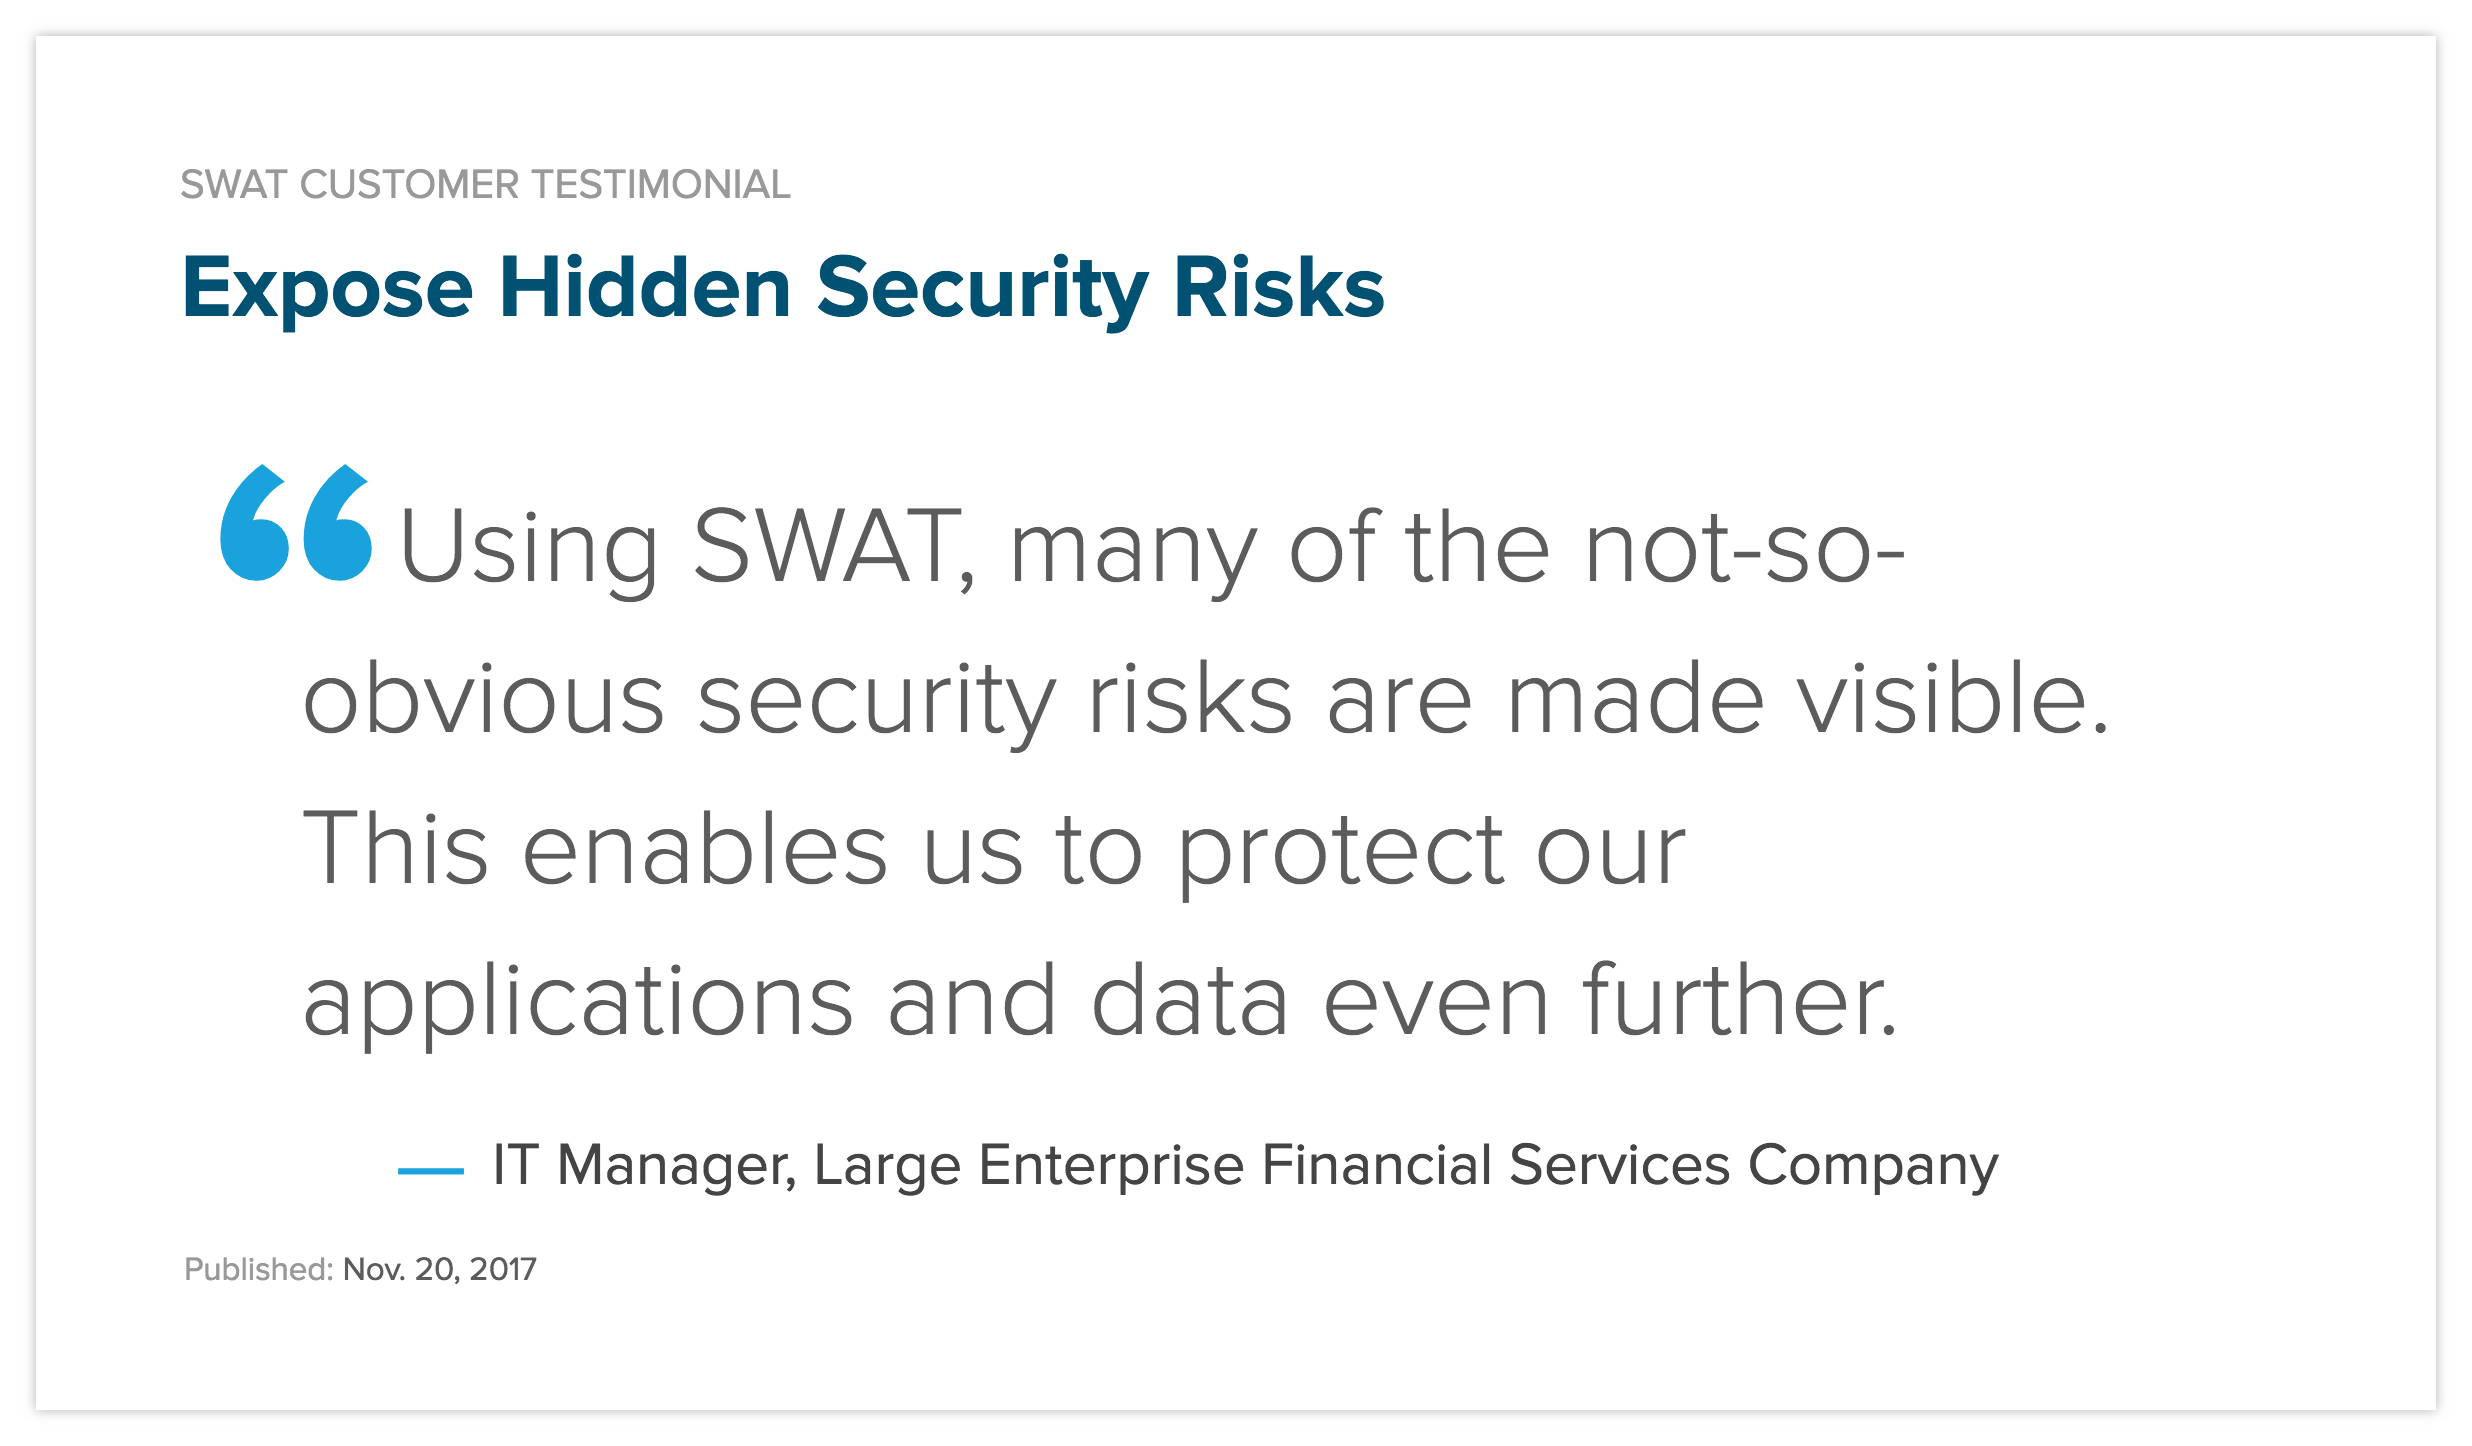 Using SWAT, many of the not-so-obvious risks are made visible. This enables us to protect our applications and data even further